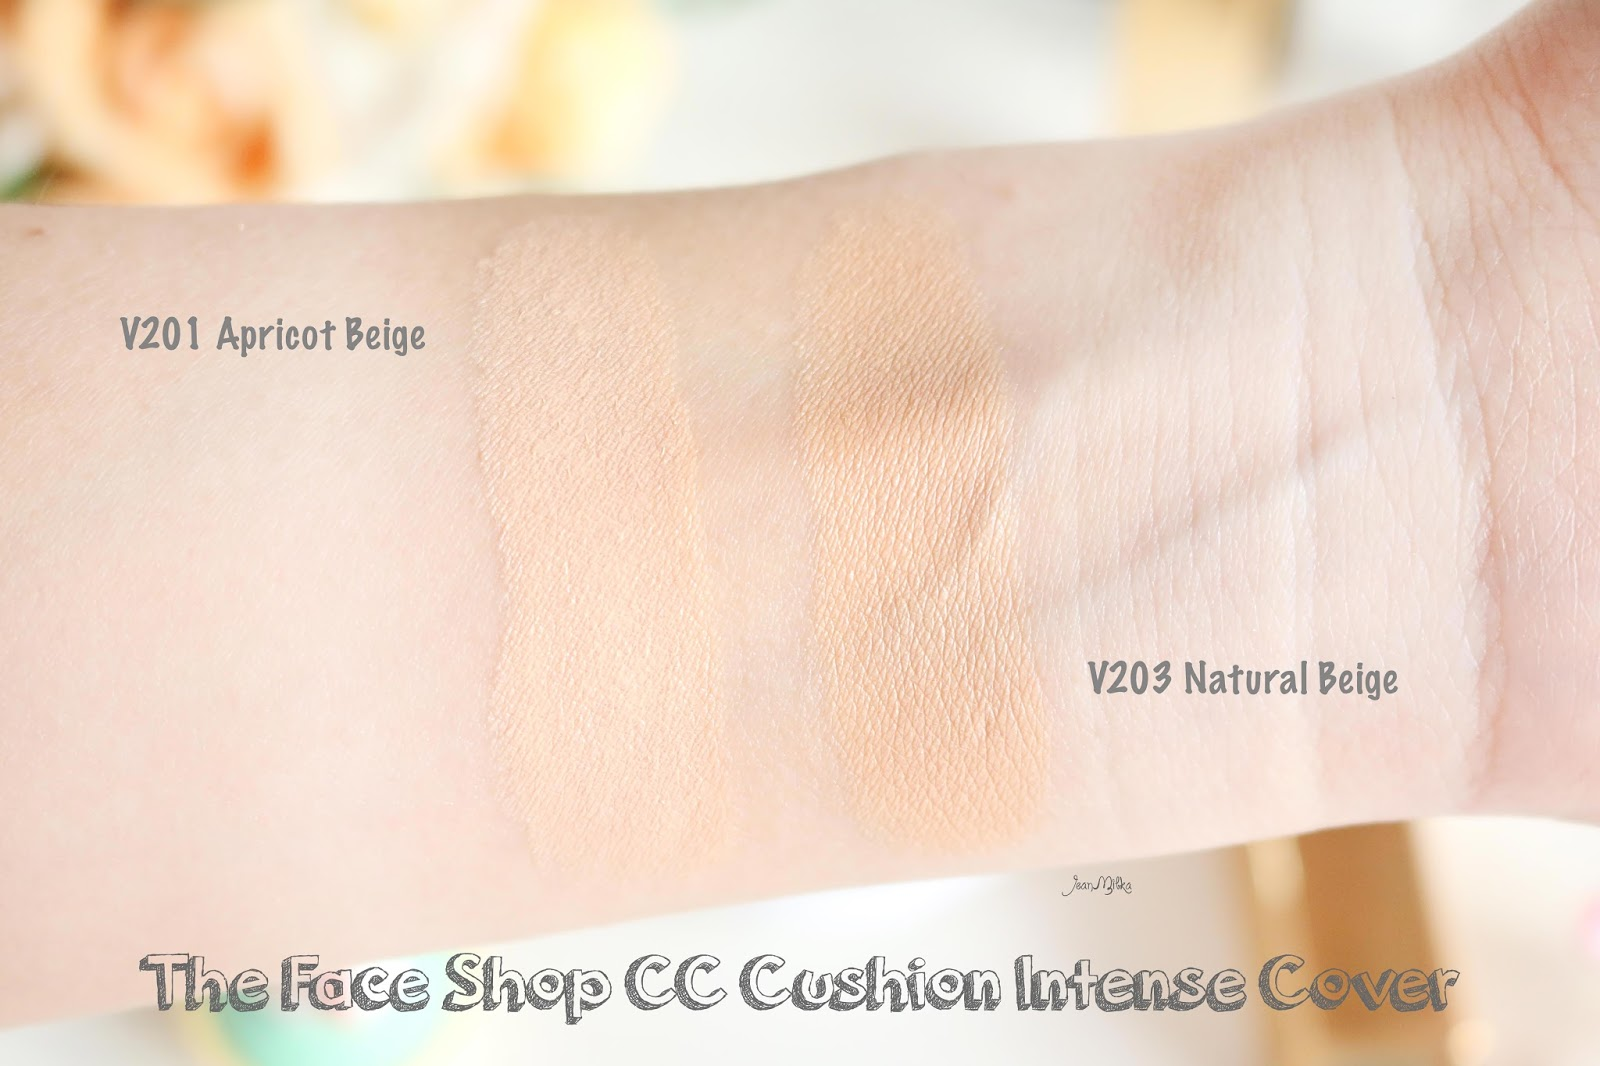 the face shop, the face shop cushion, the face shop cc cushion, cc cushion, cushion, cc cushion ultra moist, cc cushion intense cover, tfs, review, review cushion, beauty blog, natural beige, apricot beige